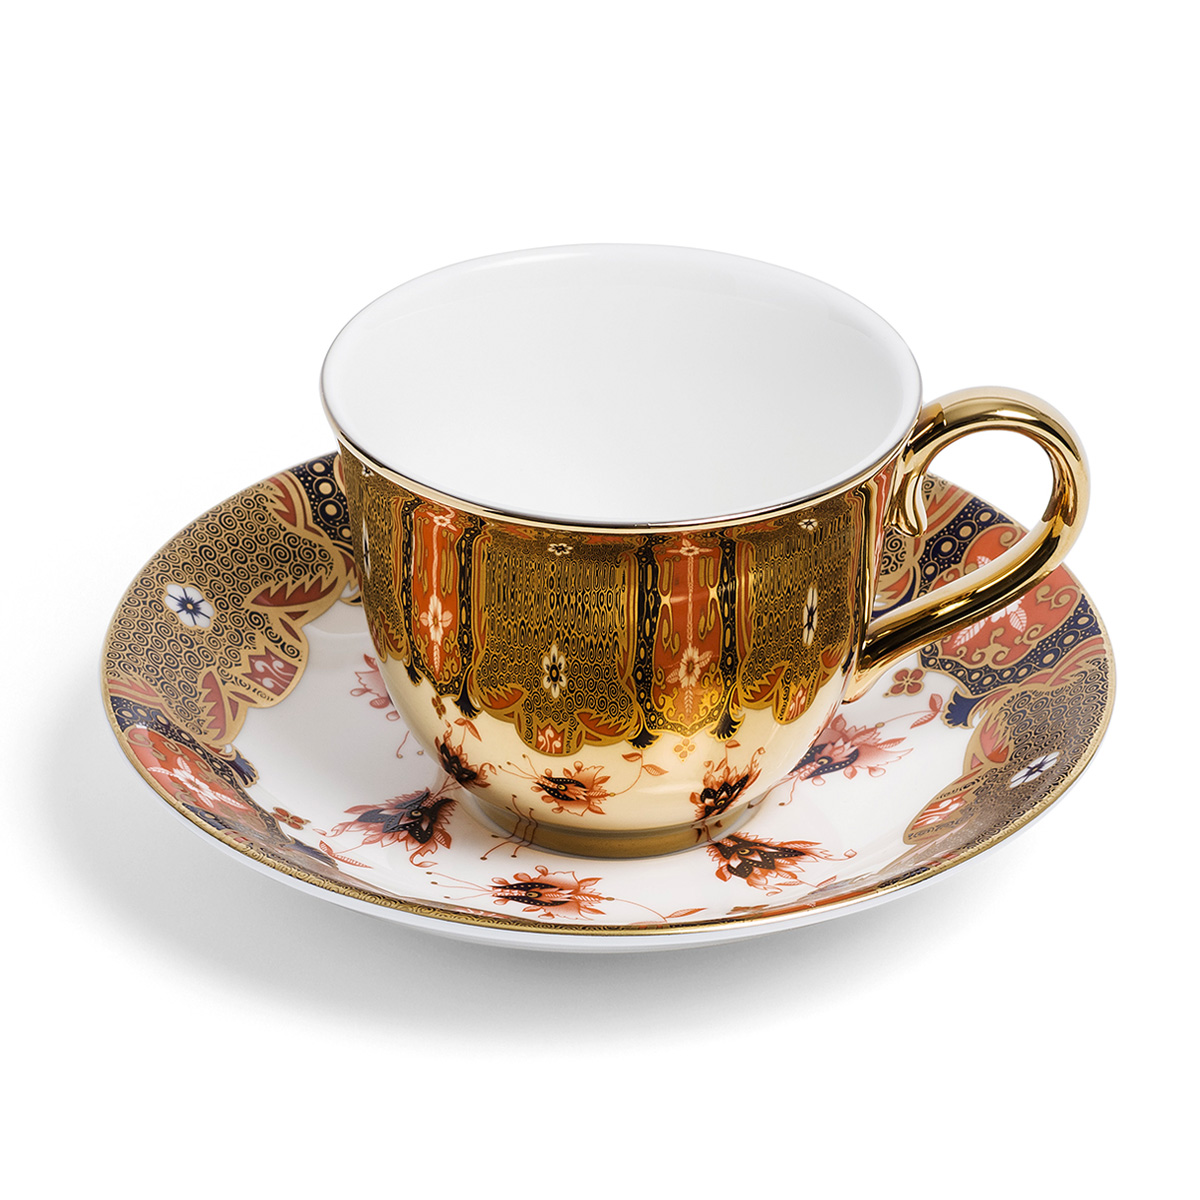 Dragon Flower cup and saucer by Richard Brendon